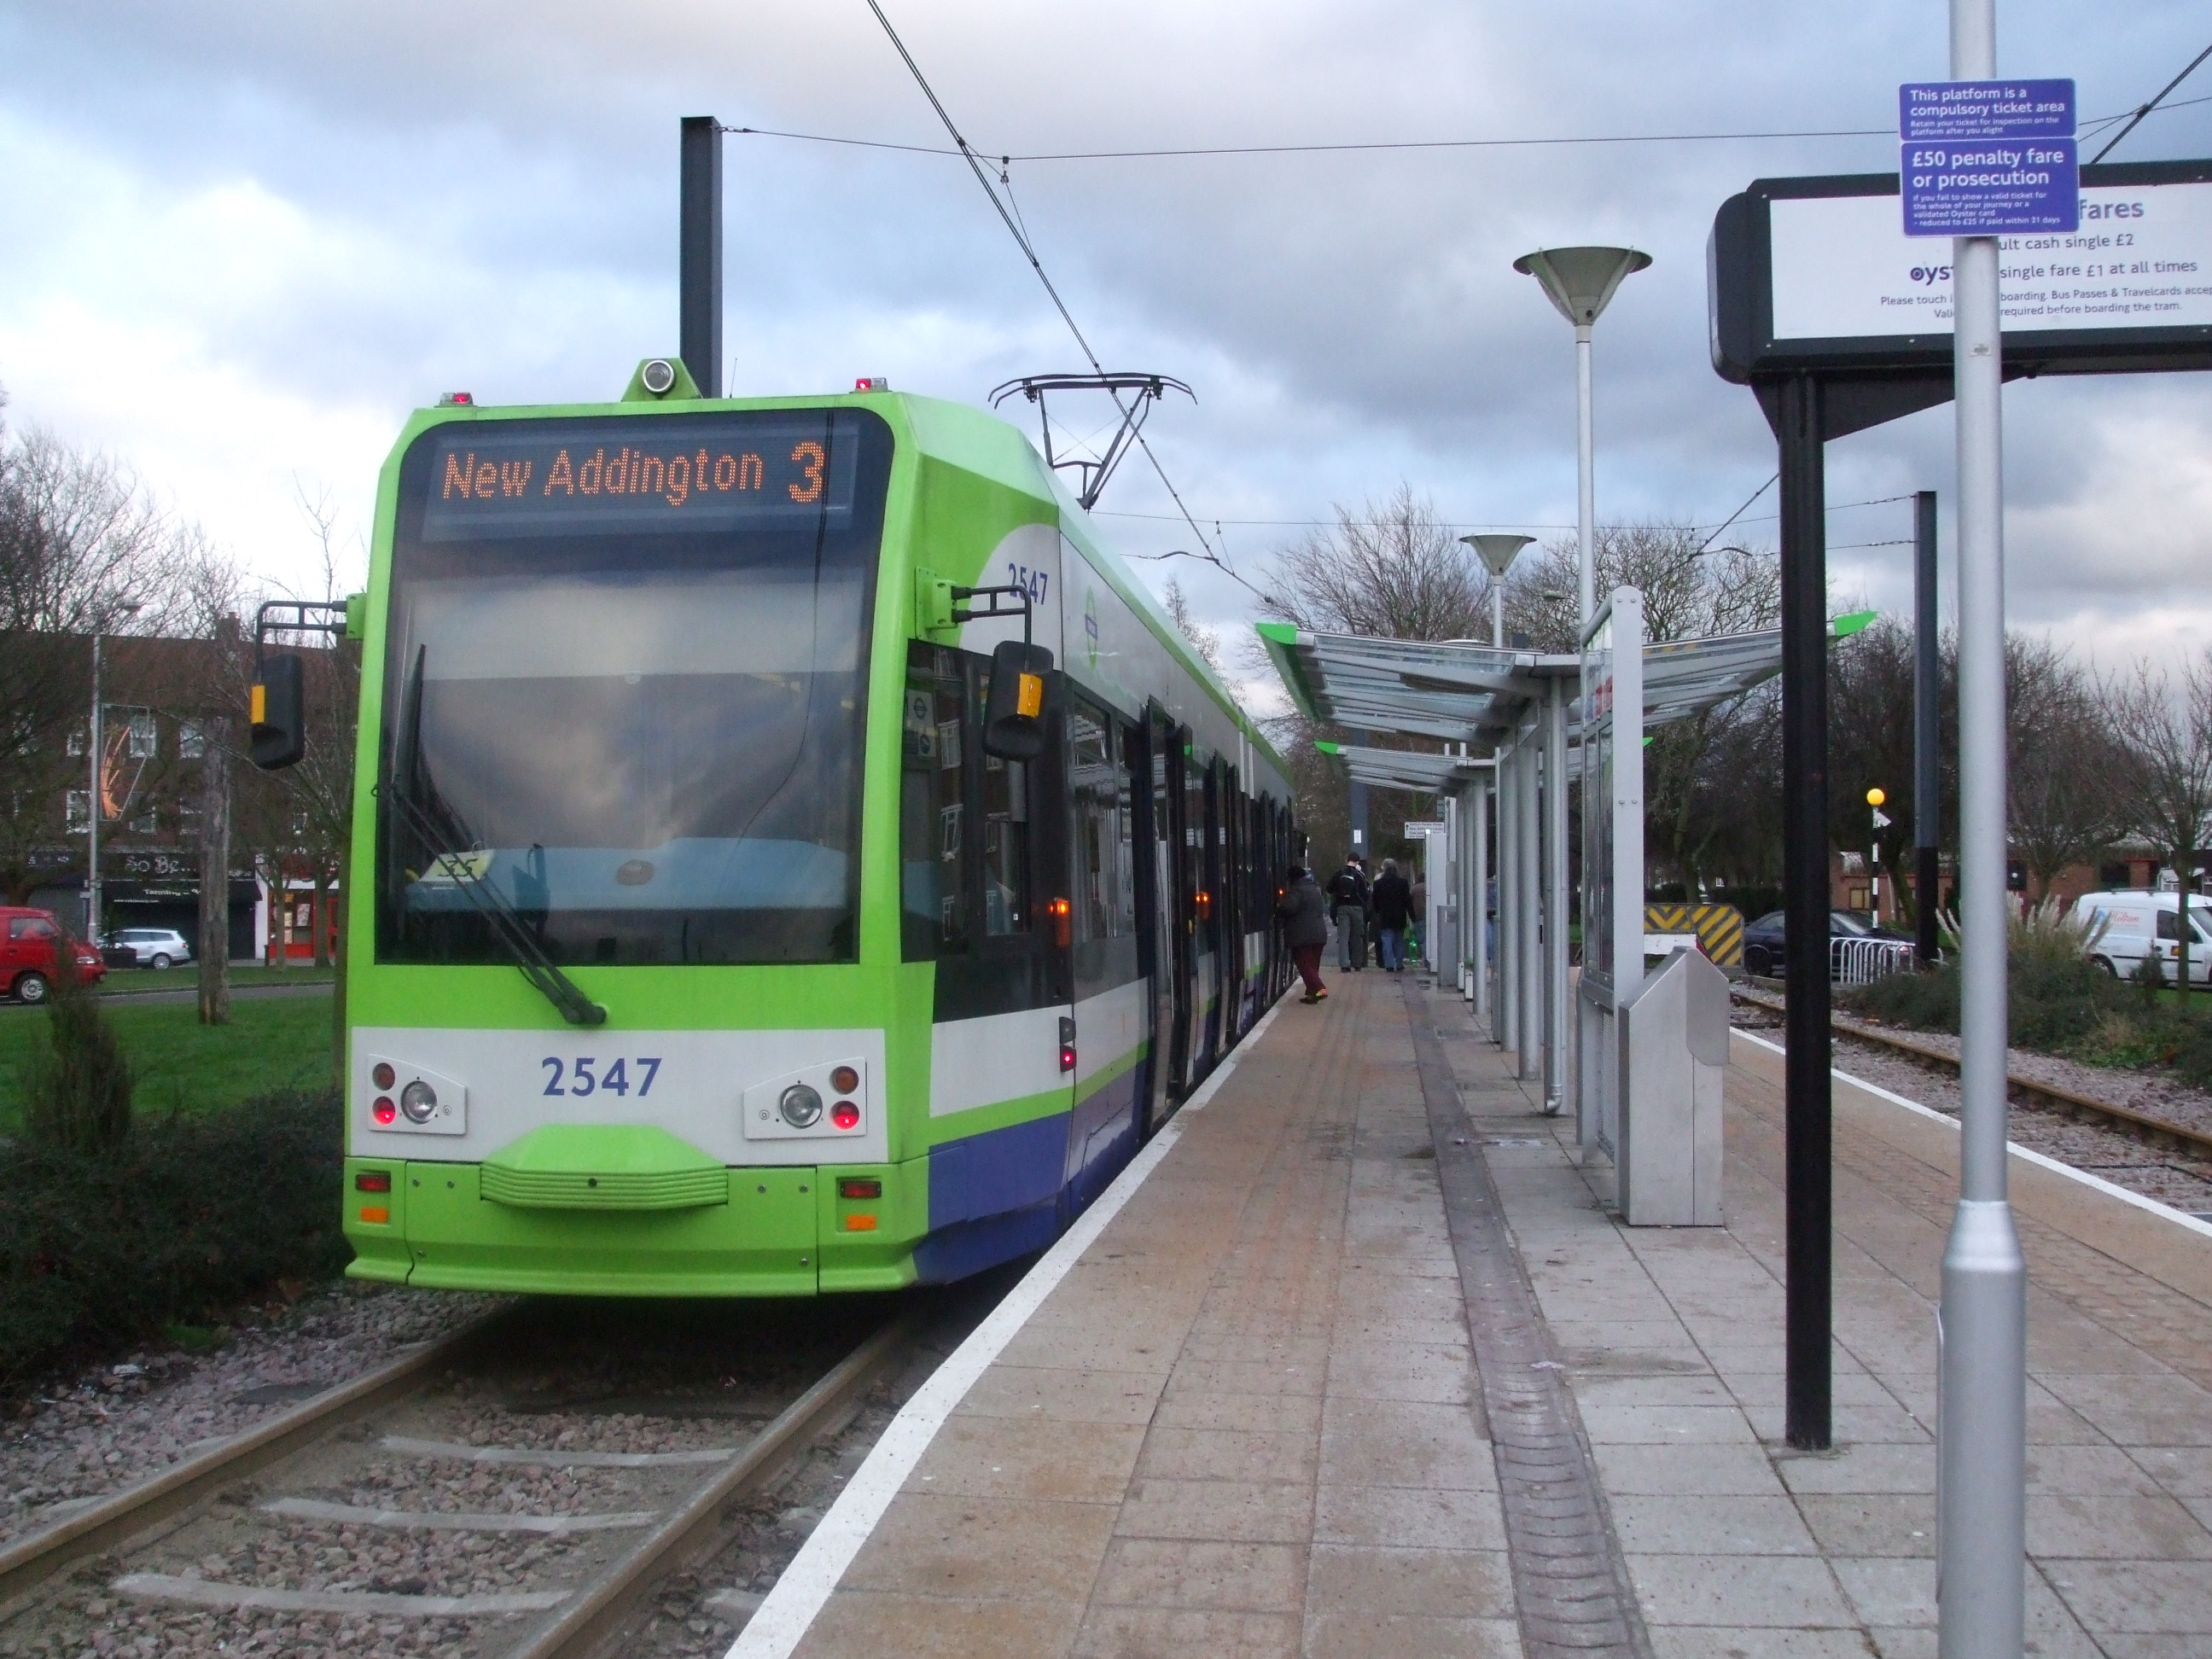 File:Tram 2547 at New Addington.JPG